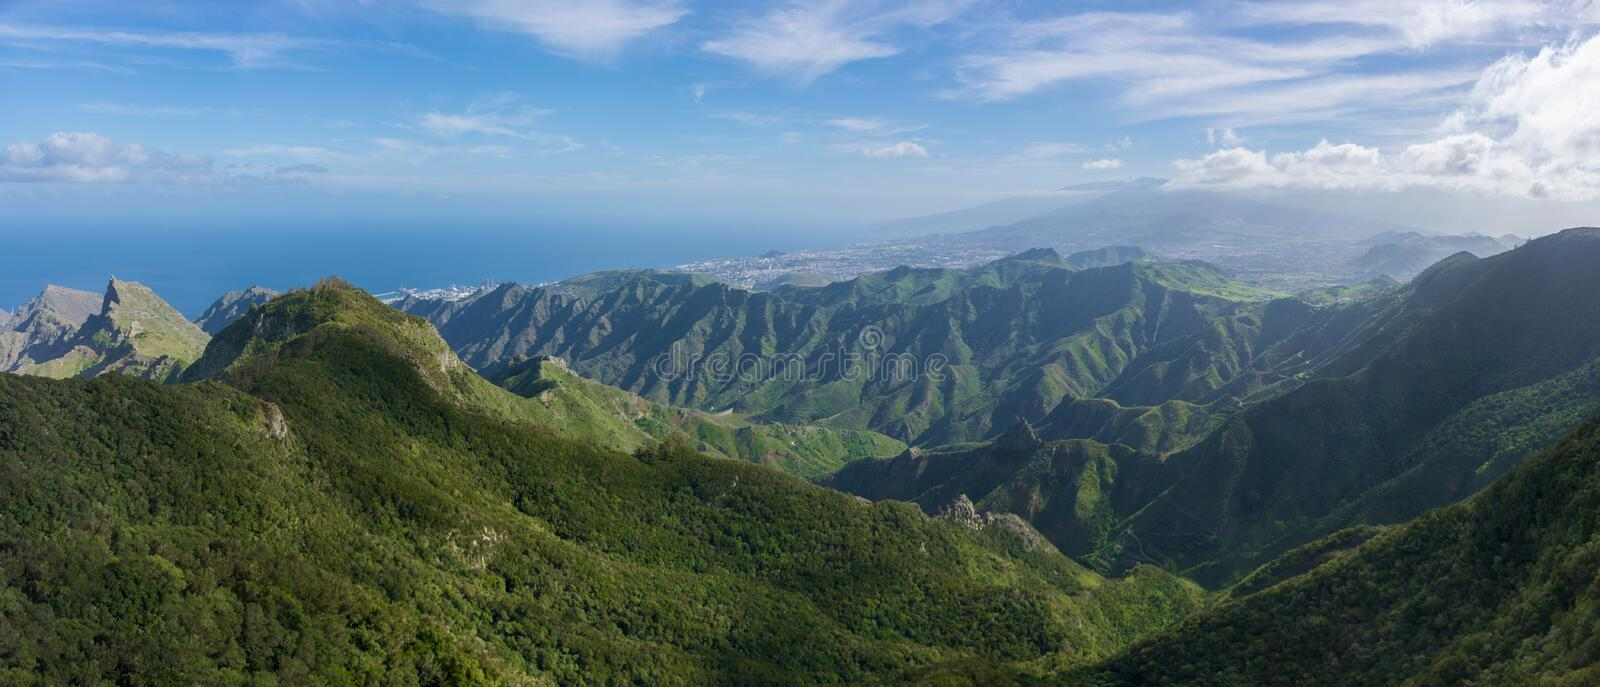 Majestic panoramic view of the Roques de Anaga. Beautiful mountain range and green valley with ocean on the background. royalty free stock photography